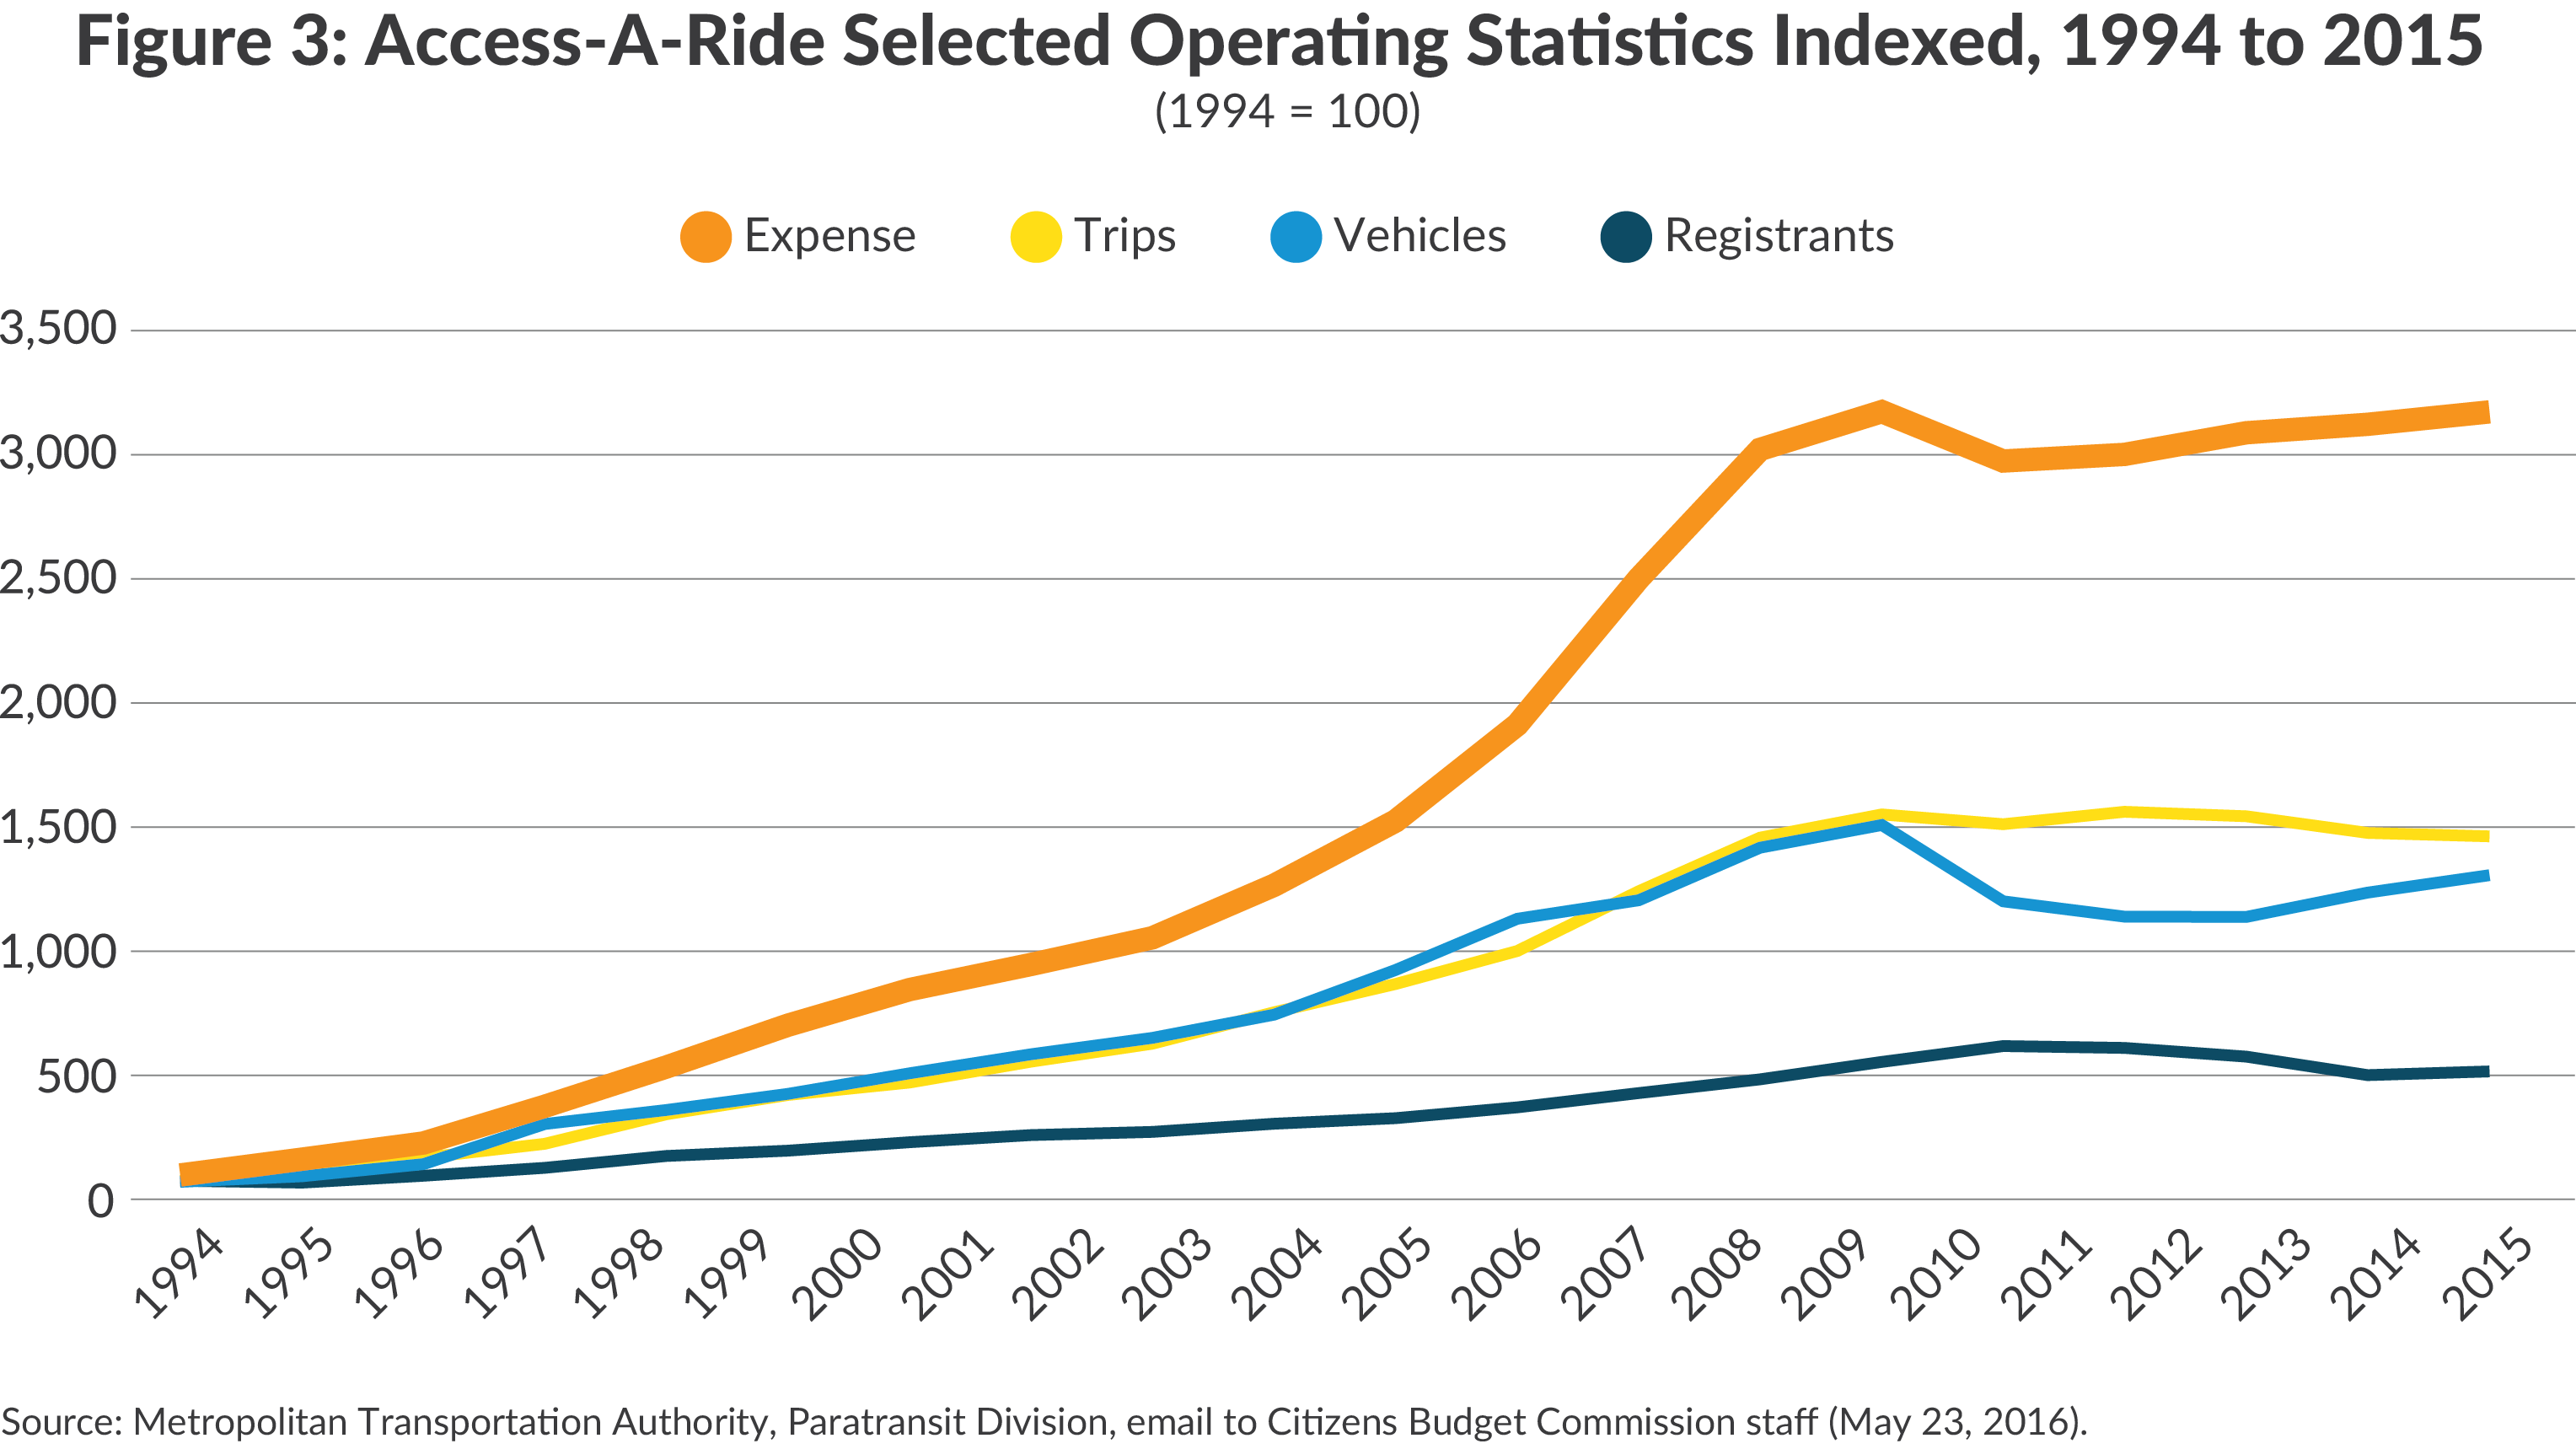 Growth in MTA Access-a-Ride operating statistics, including vehicles, trips, and registrants